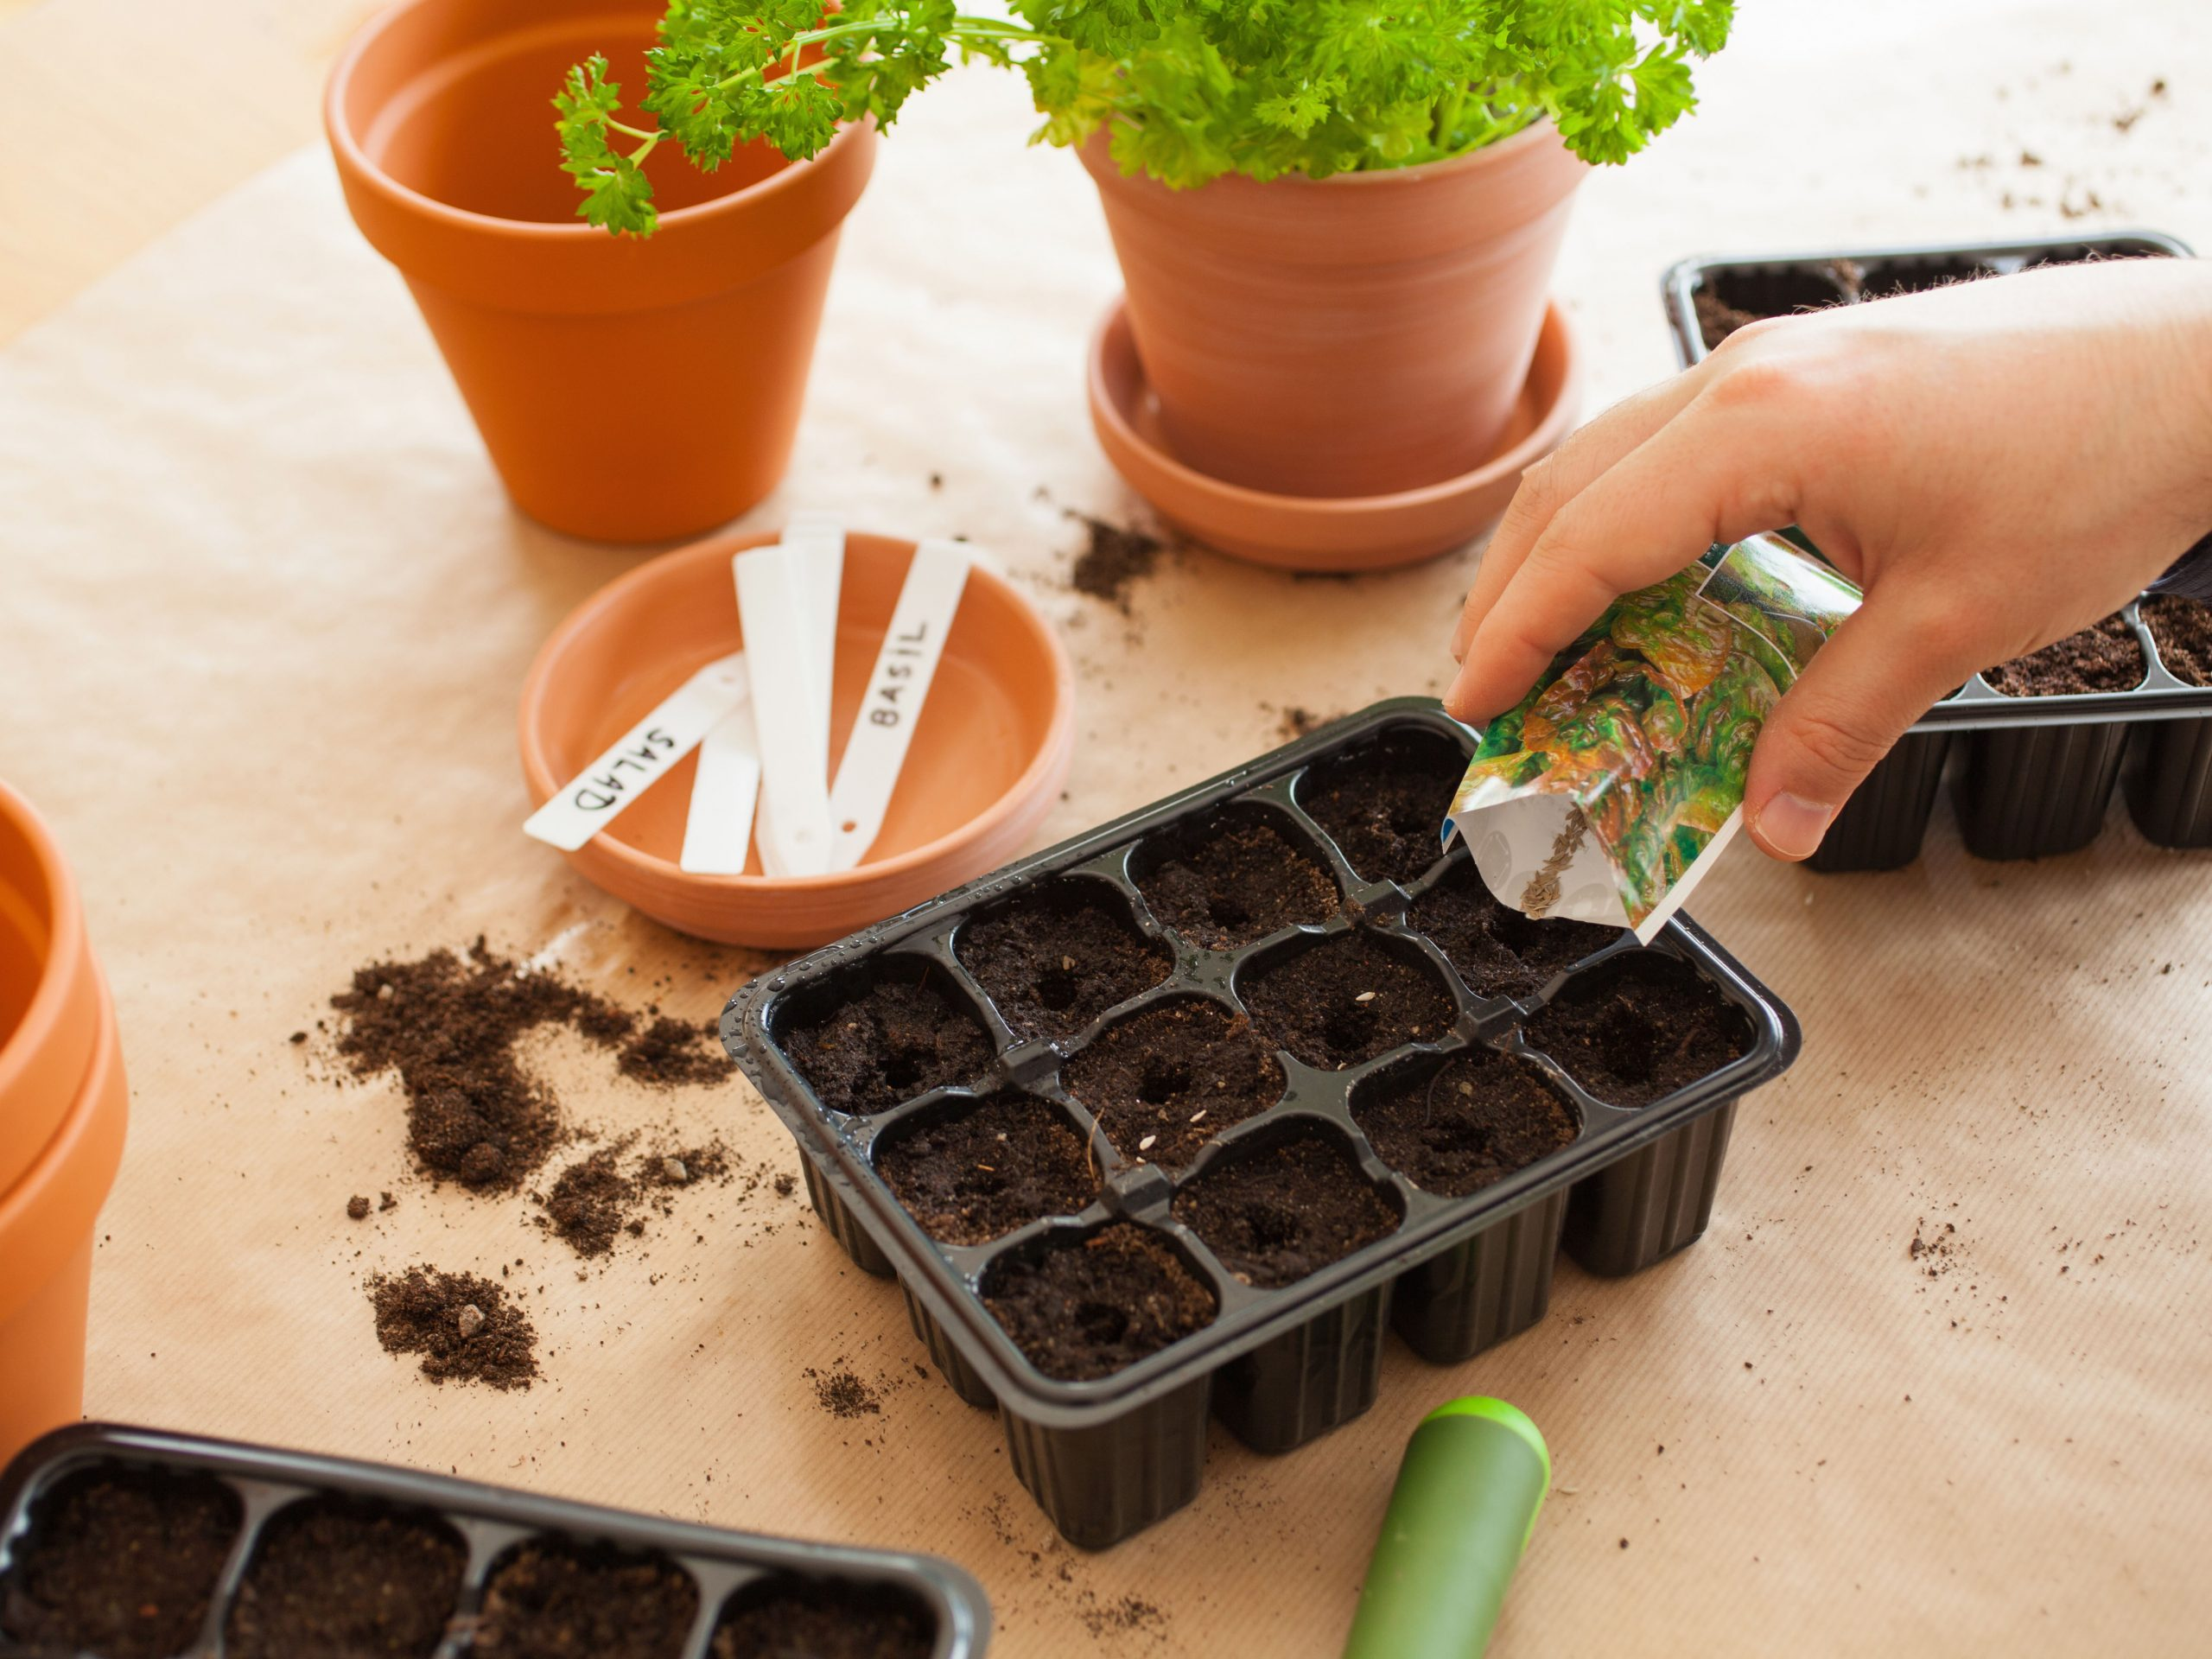 Germinate Vegetables from seeds